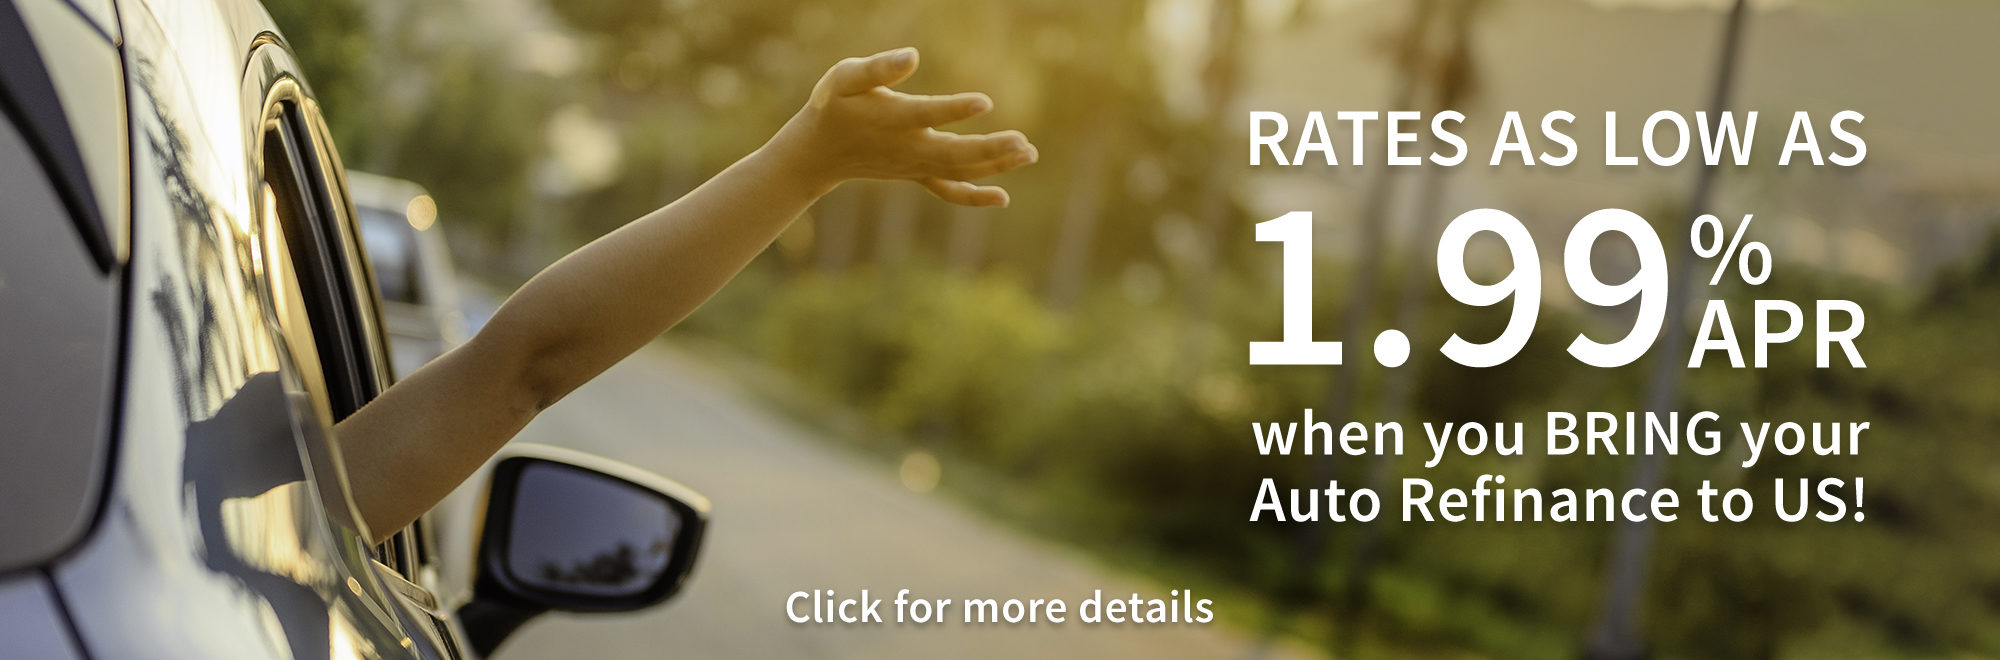 """Person in a car with their hand out a window with text reading, """"Rates as low as 1.99% APR when you bring your auto refinance to us!"""""""